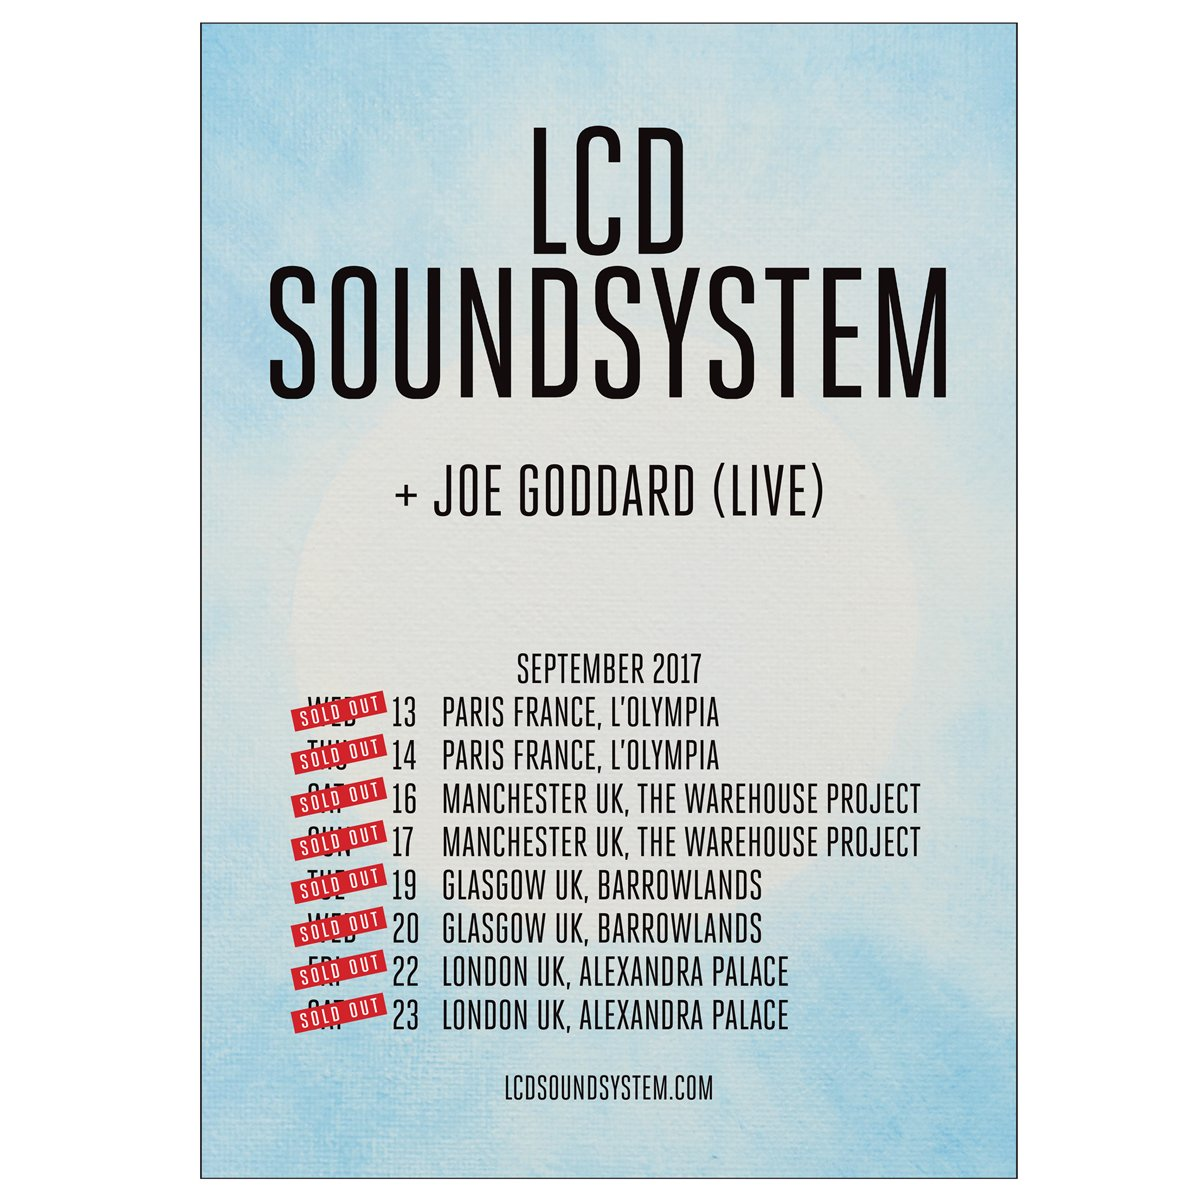 >> Announcing! << I will be supporting @lcdsoundsystem on these Sold Out European Tour dates this September. https://t.co/BqKBpPkGND